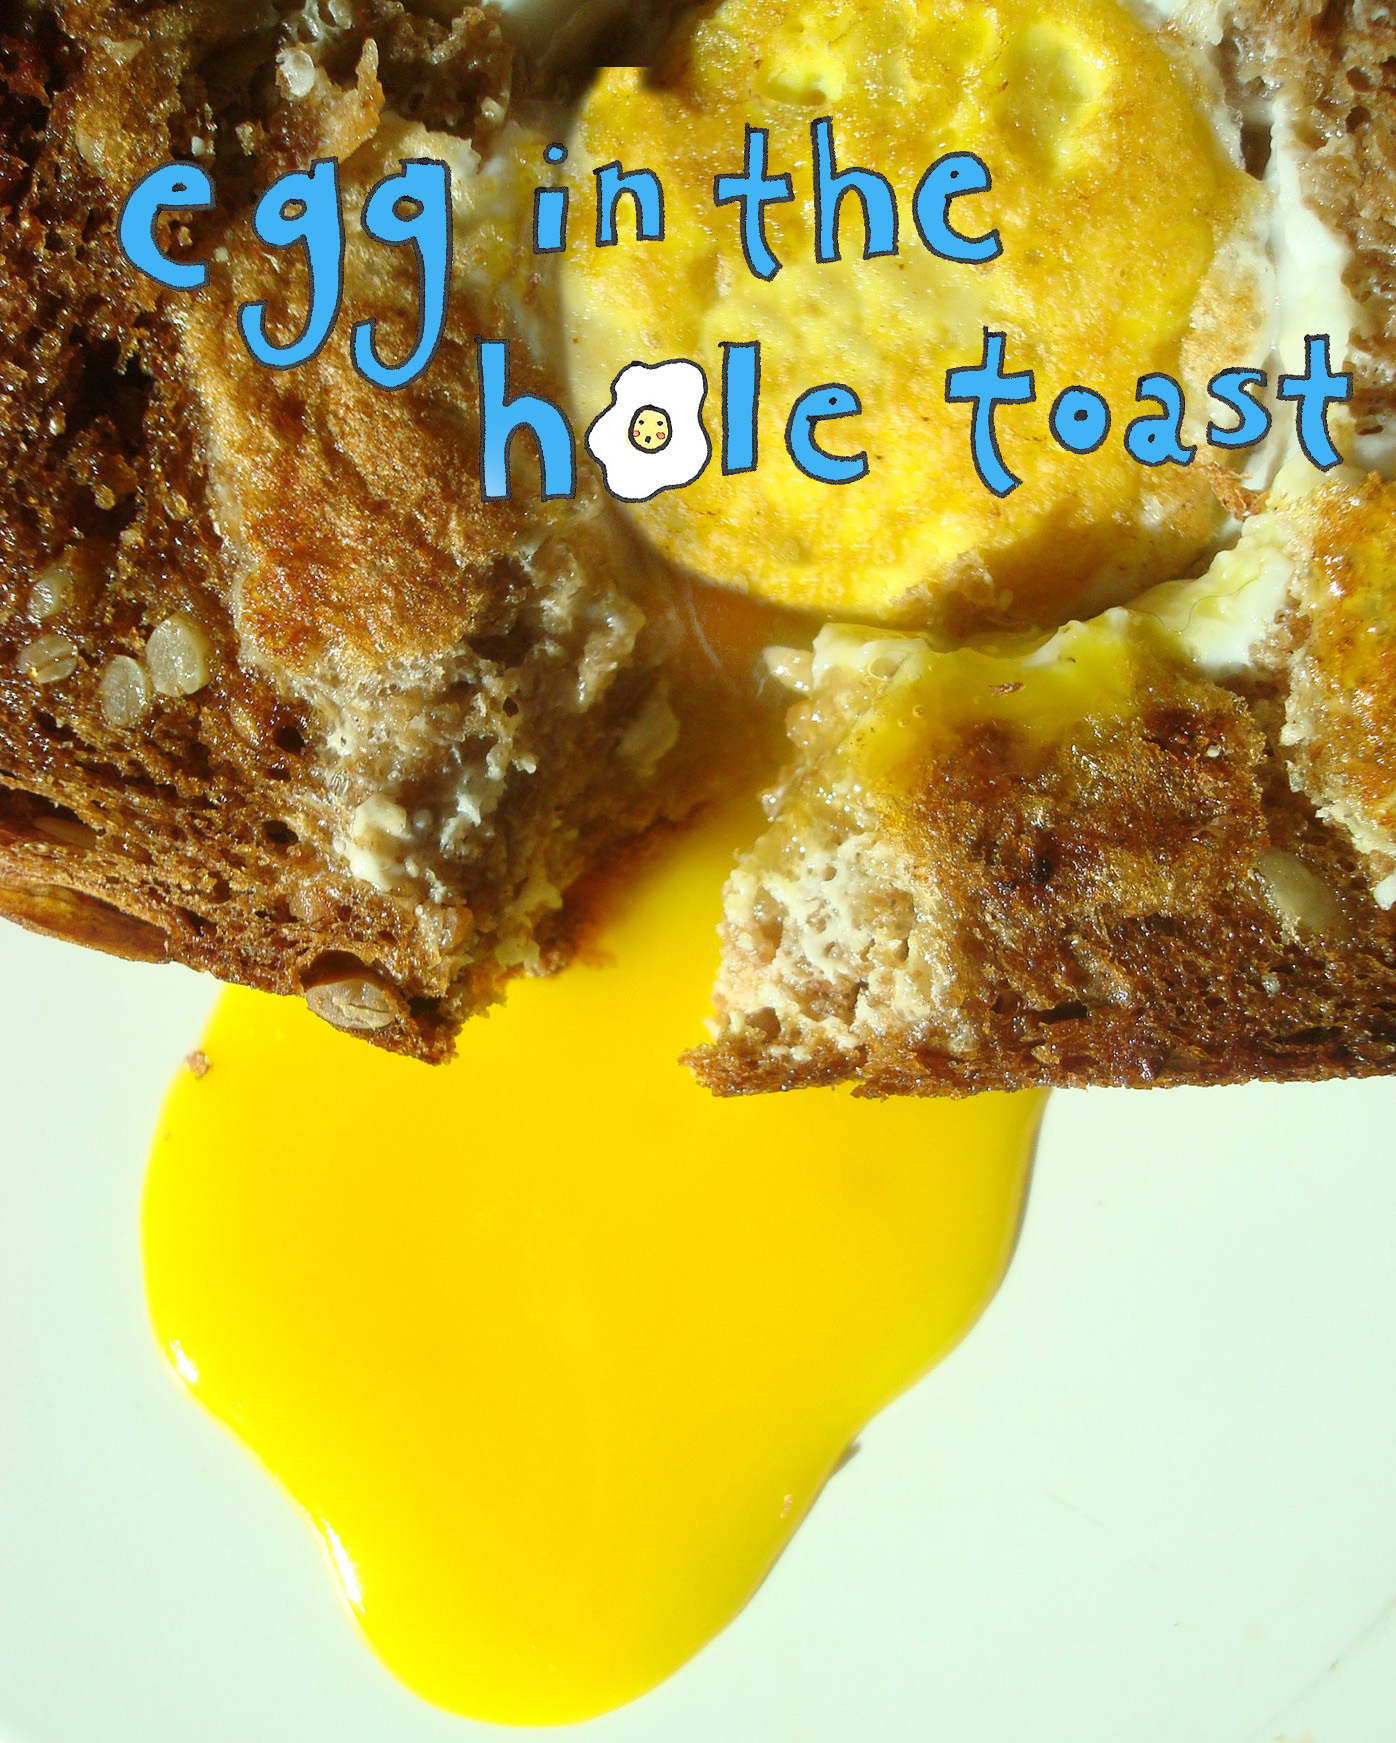 Perfect toast filled with an egg inside